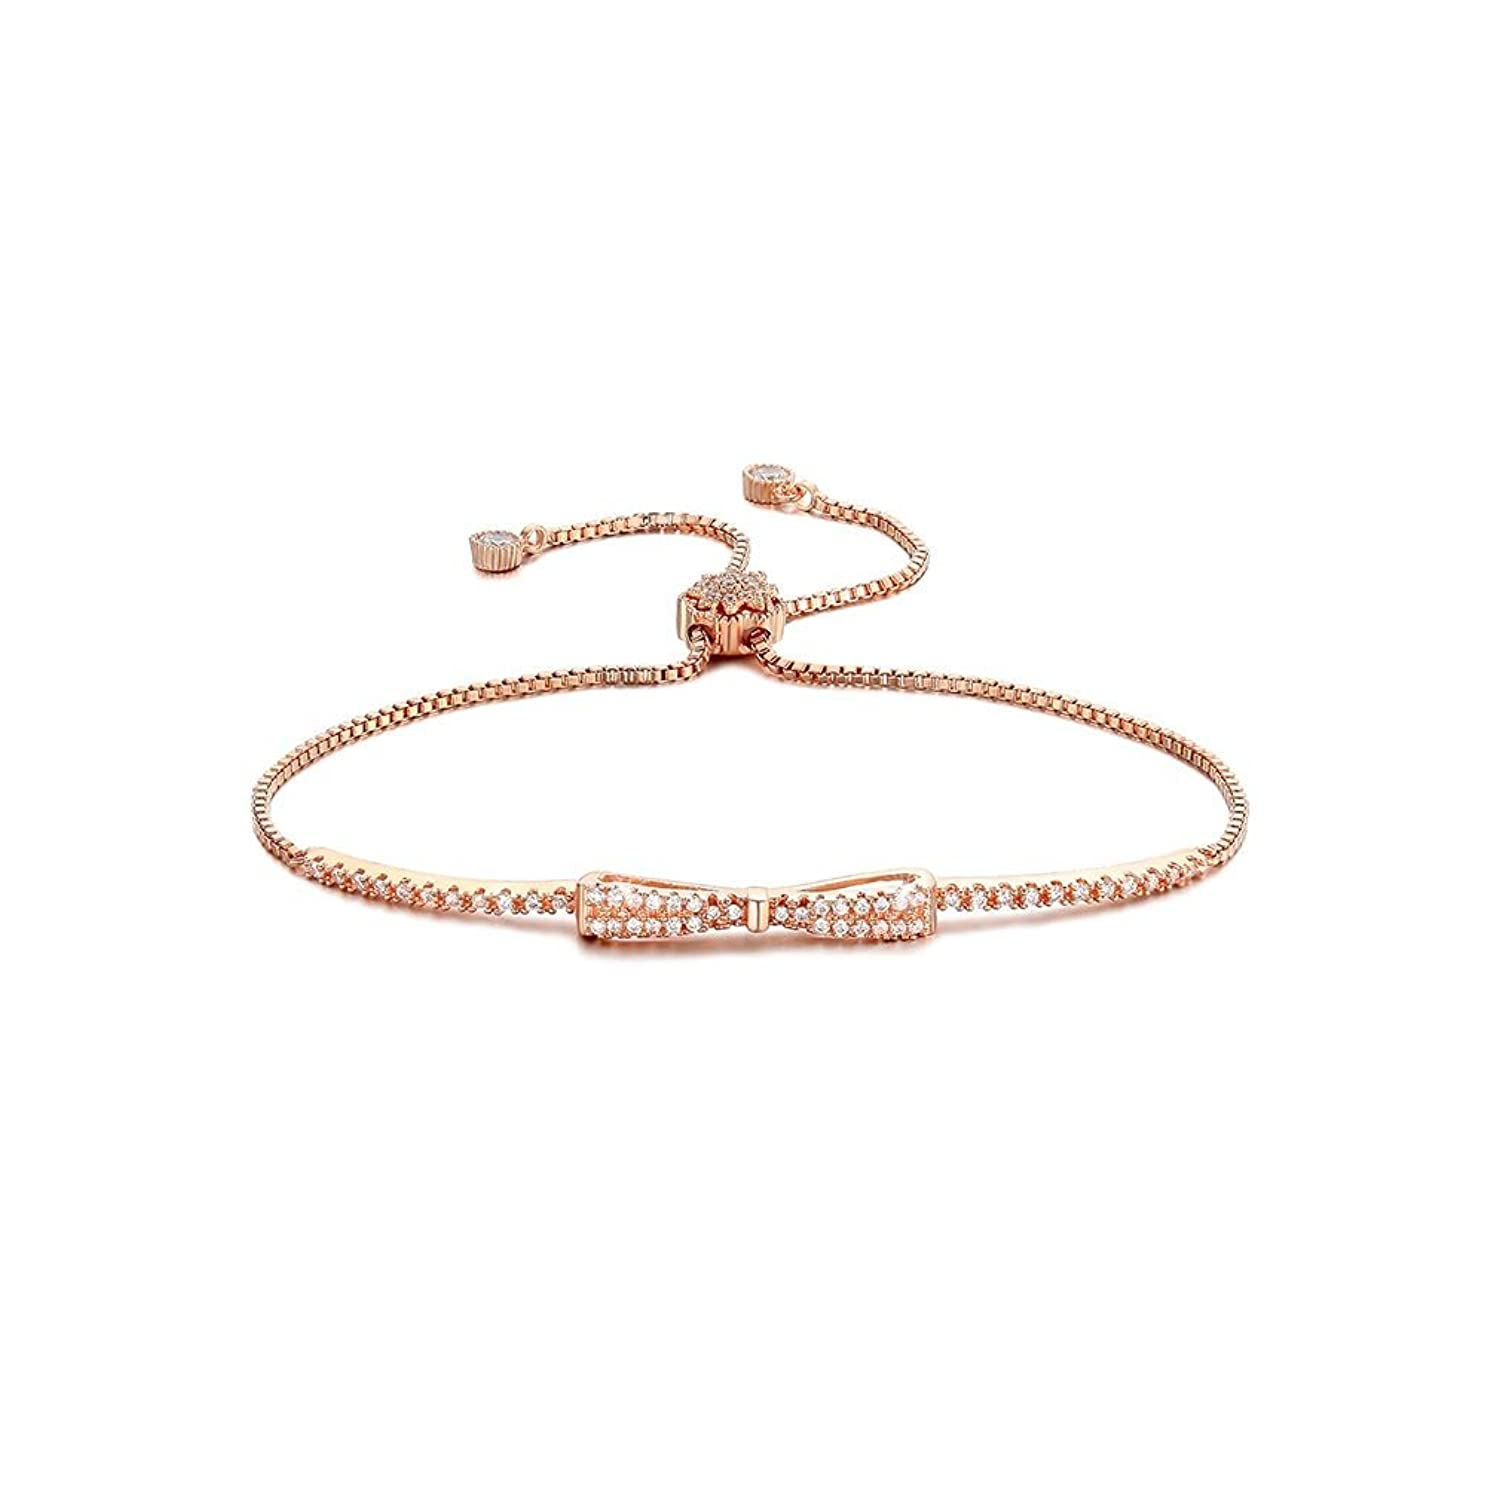 Bundle offer 18k gold plated amp white gold plated necklace 2 ring - Cute Bowknot 18k White Gold Plated Charm Bracelet Diamond Cz Paved 2 Colors